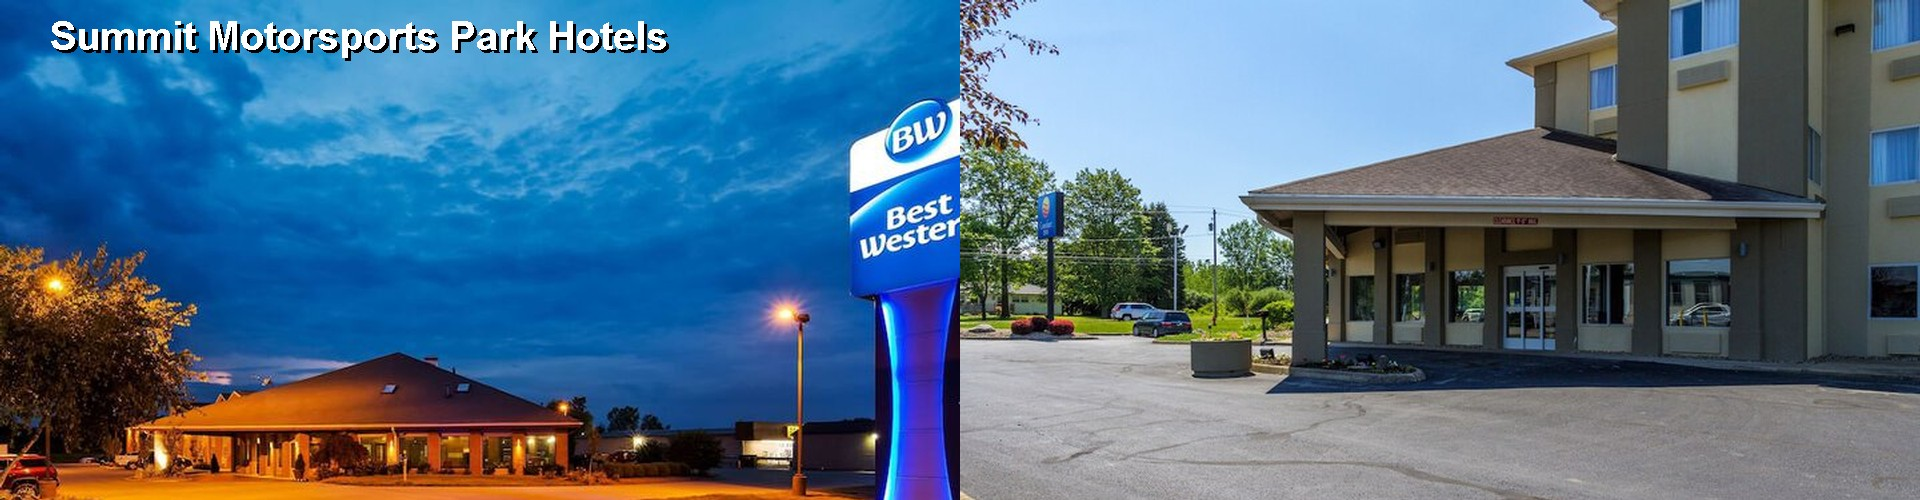 $50+ hotels near summit motorsports park in norwalk oh